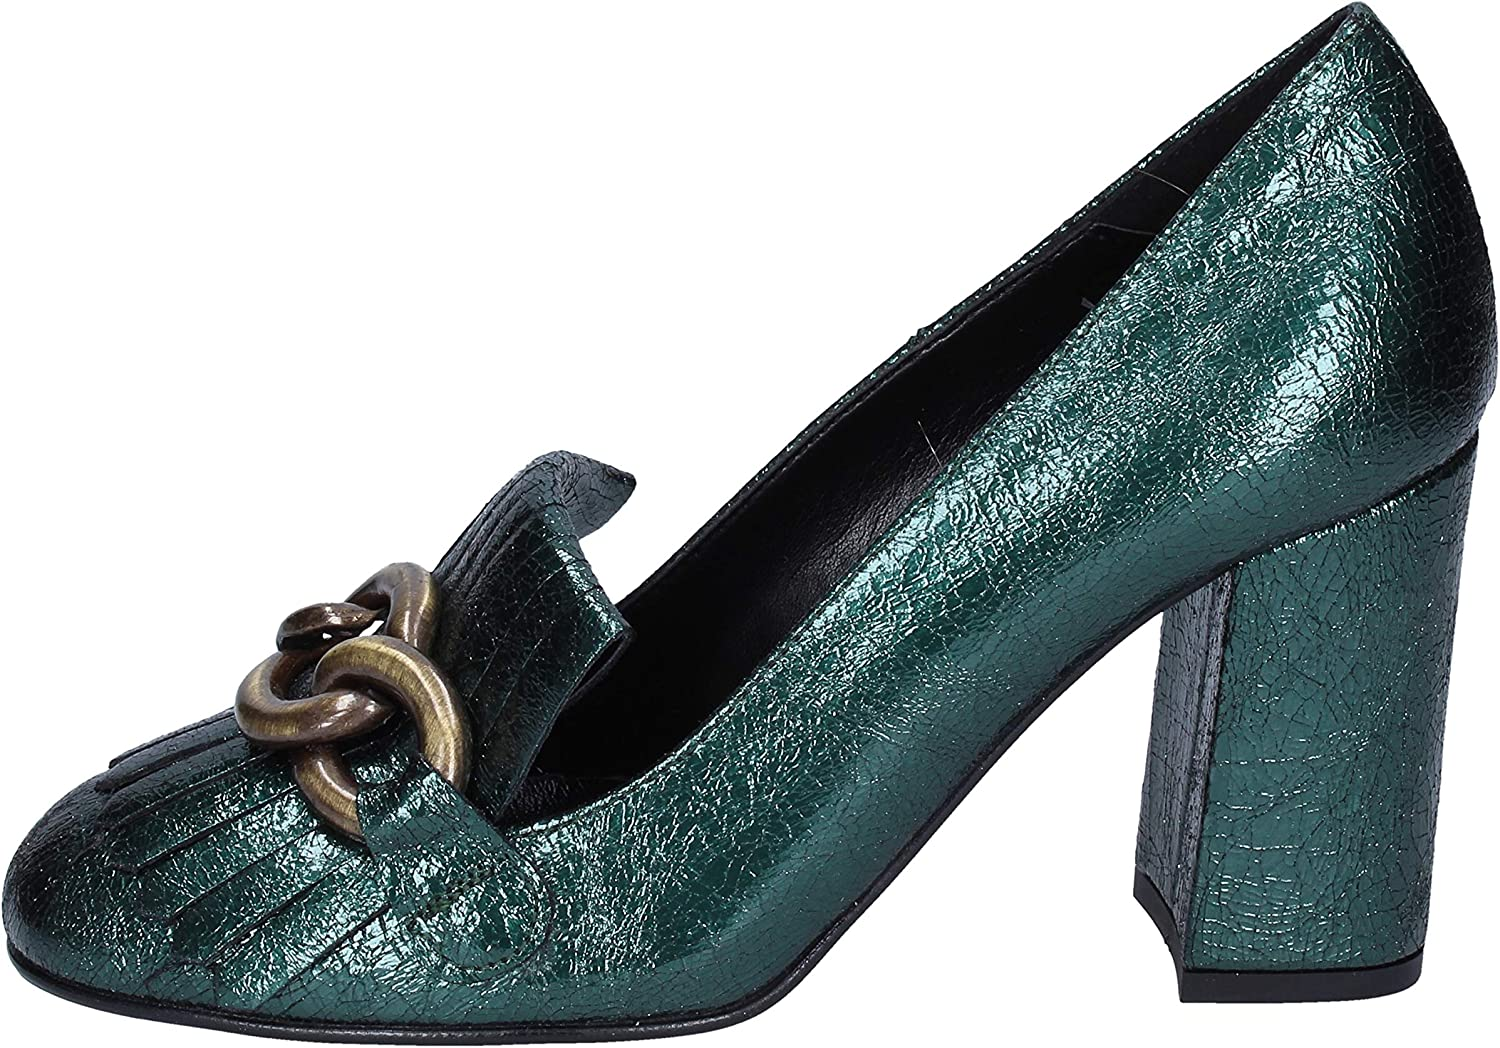 OLGA RUBINI Pumps-shoes Womens Green